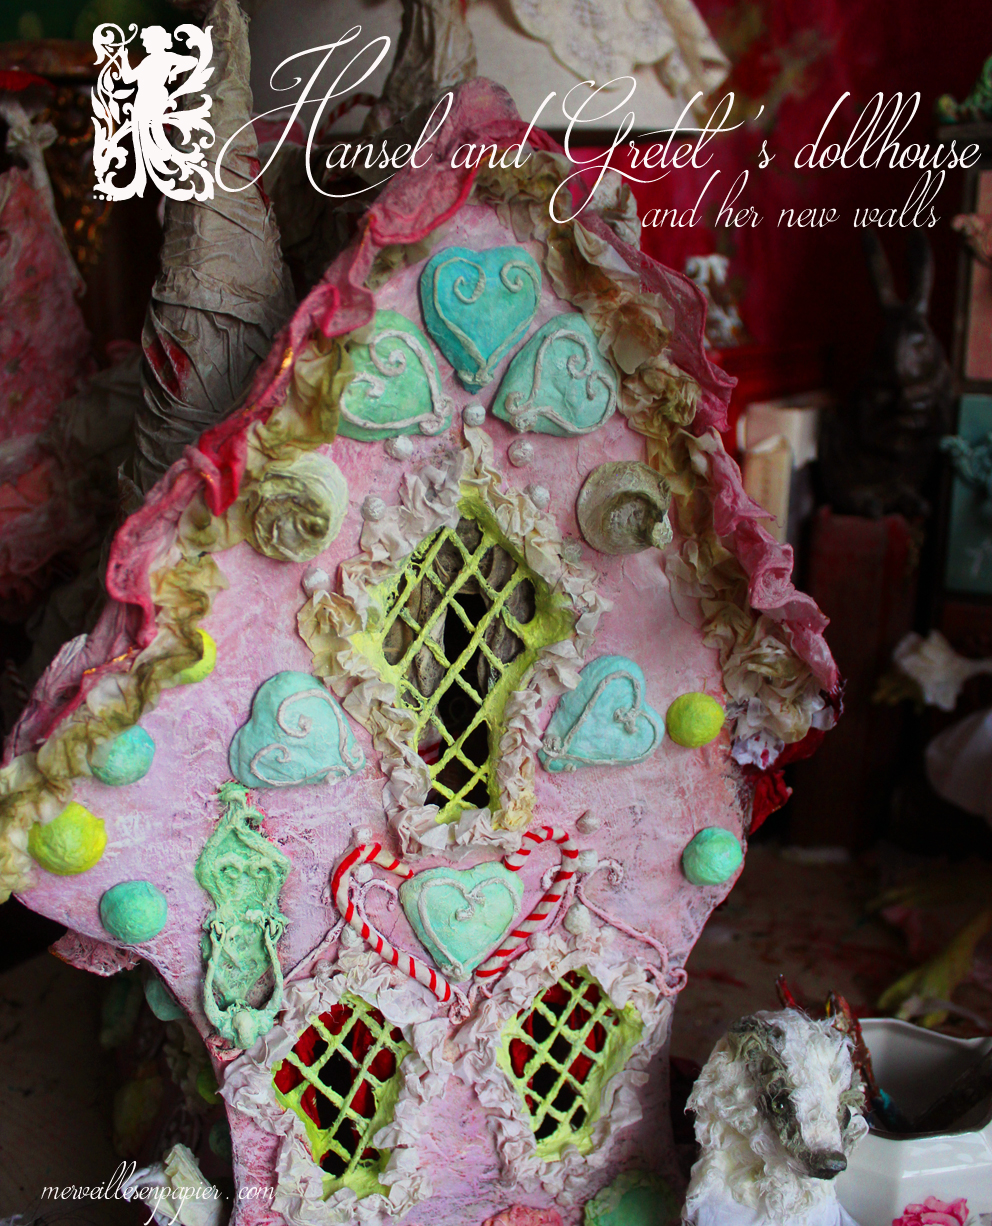 hansel-and-gretel-house.jpg